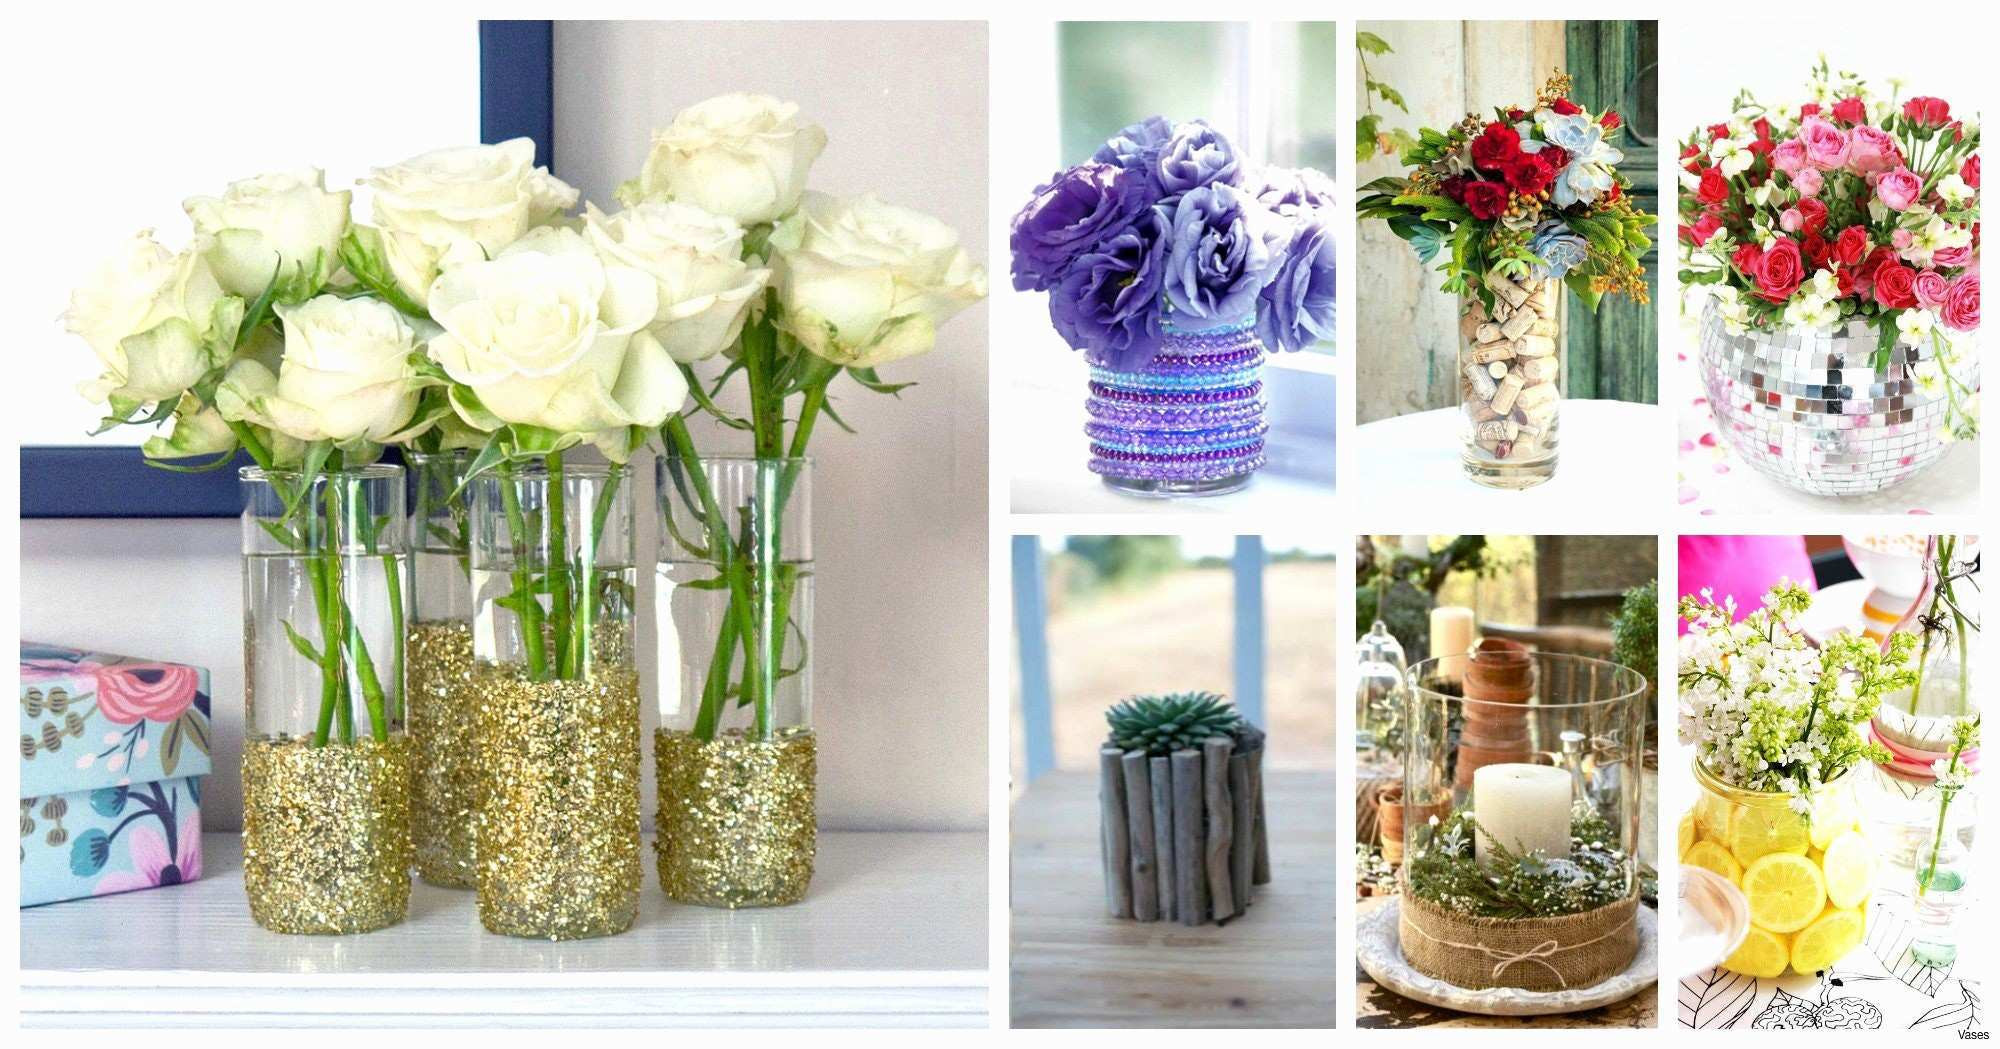 Bulk Glass Vases for Wedding Of Best Candles In Bulk for Wedding with Faux Crystal Candle Holders Inside Amazing Candles In Bulk for Wedding and Wedding the Wedding Lovely Wedding Favors Candles Great Pe